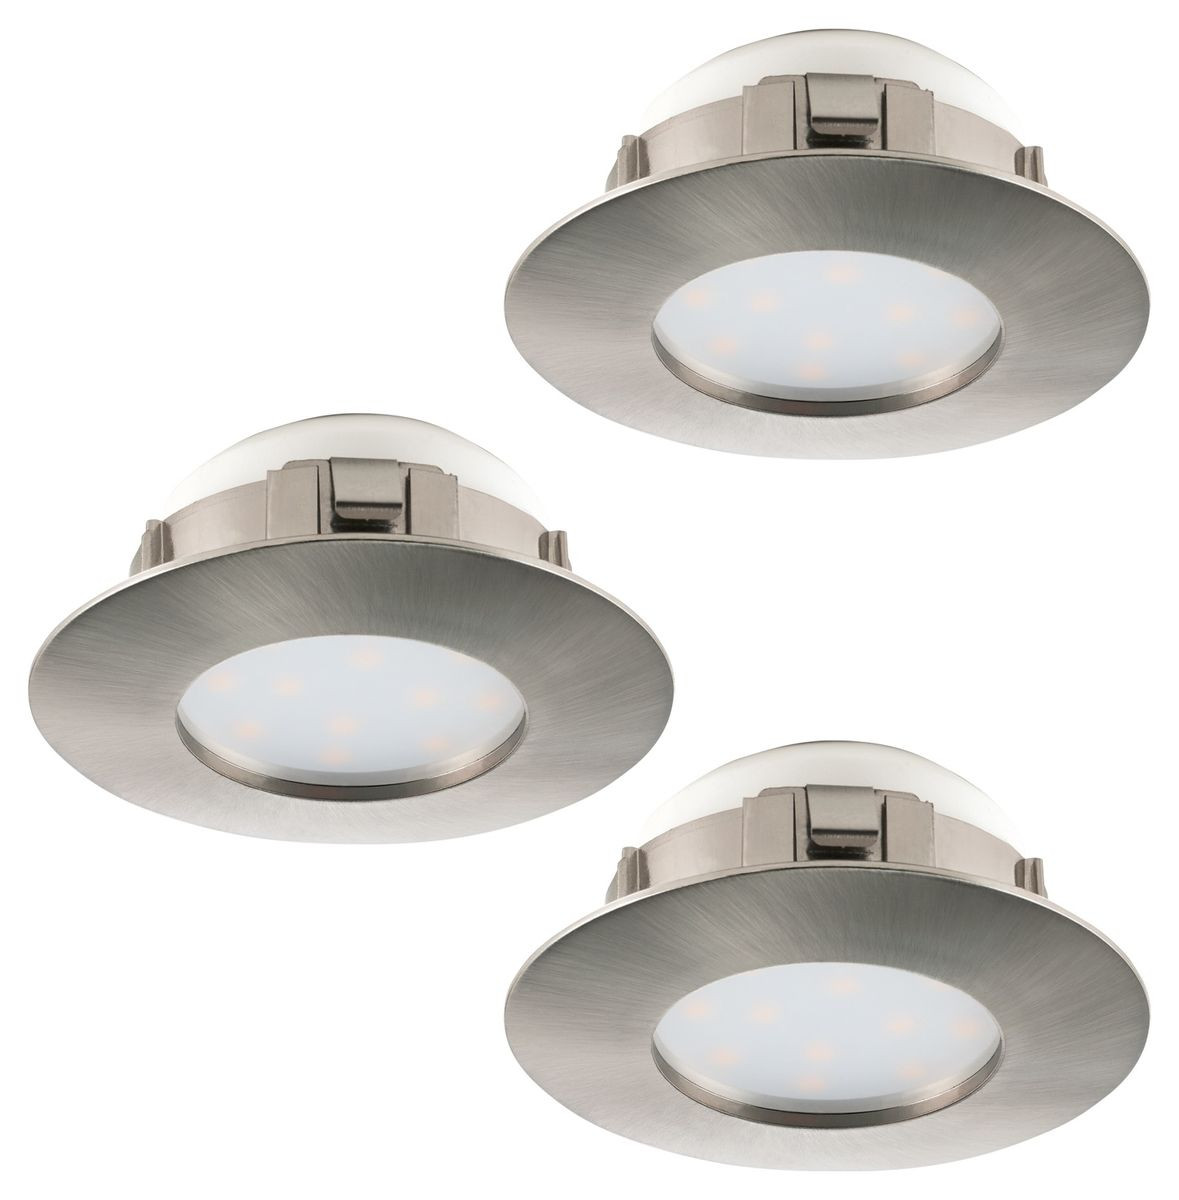 LED-alasvalosarja Eglo 3x6W, Ø78mm, IP20/44, teräs 95823